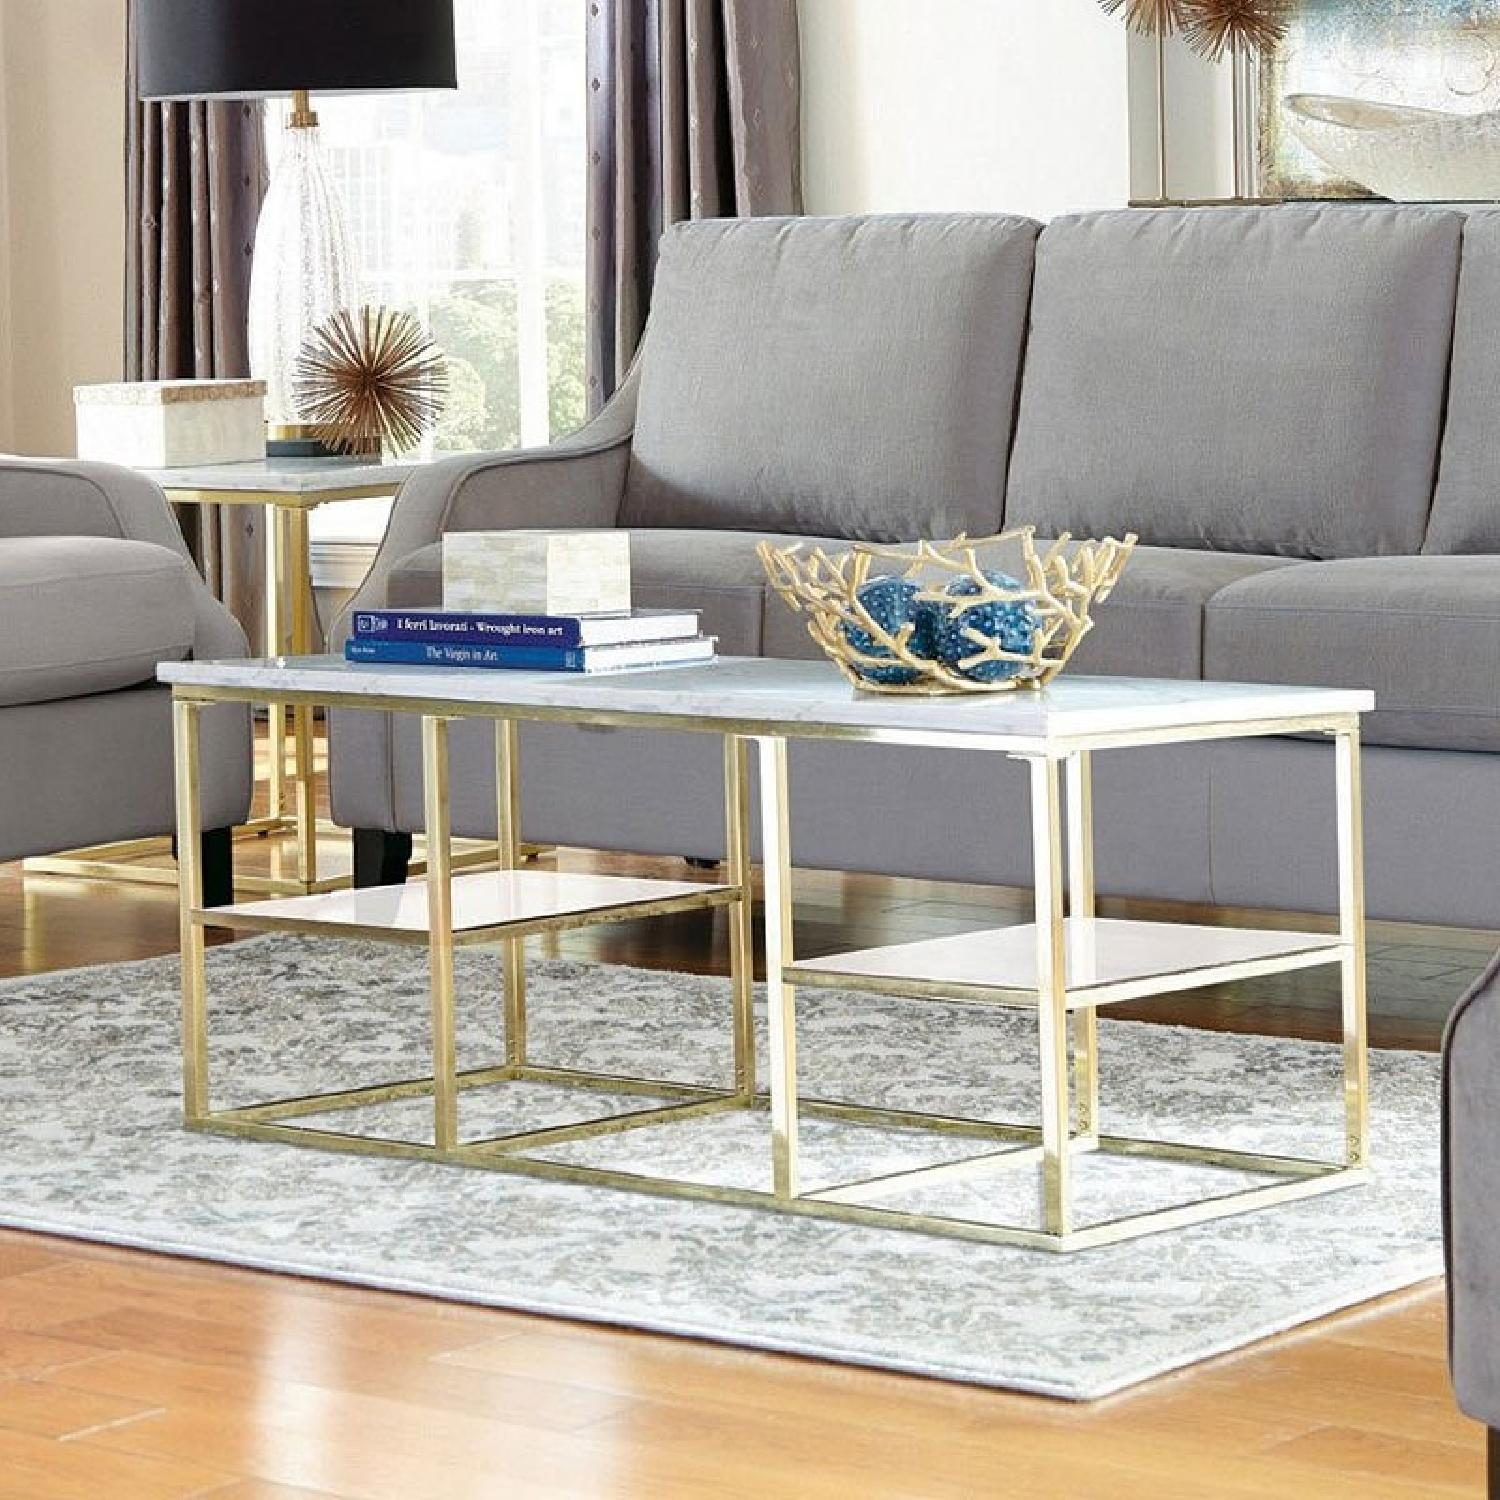 Marble Top End Table w/ Brass Legs - image-3